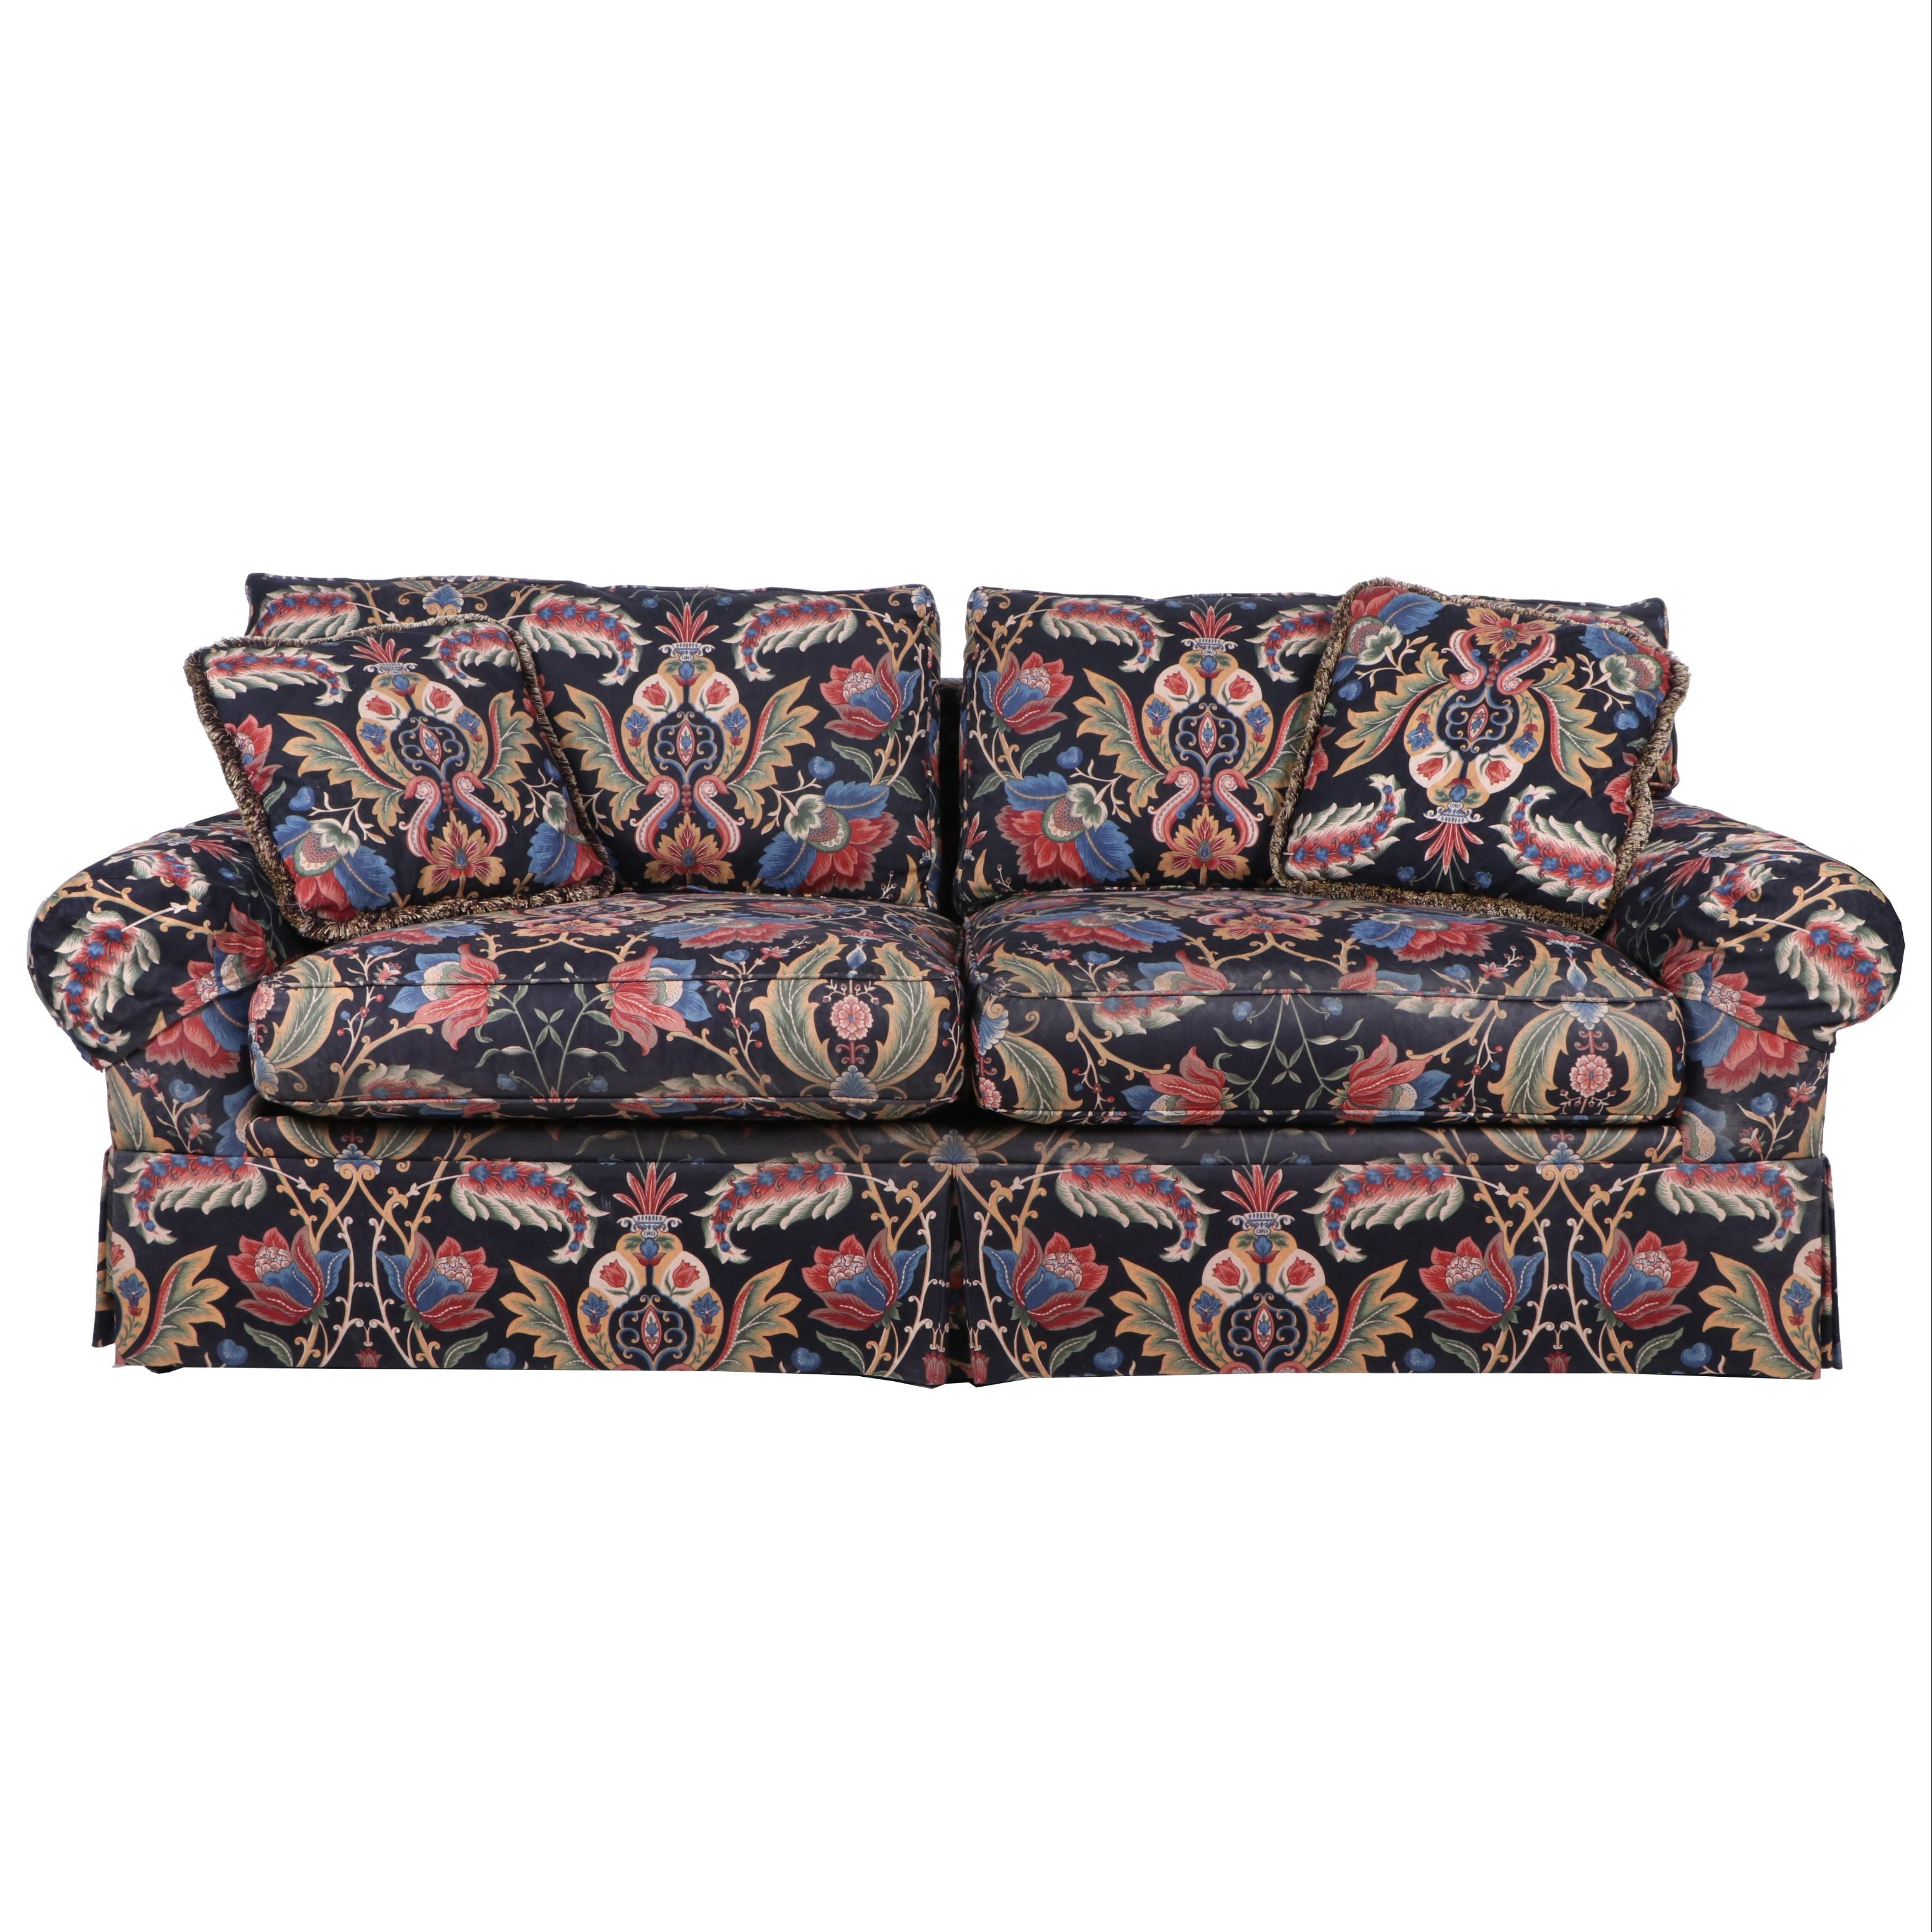 Upholstered Sofa by J. Royale Furniture, 21st Century